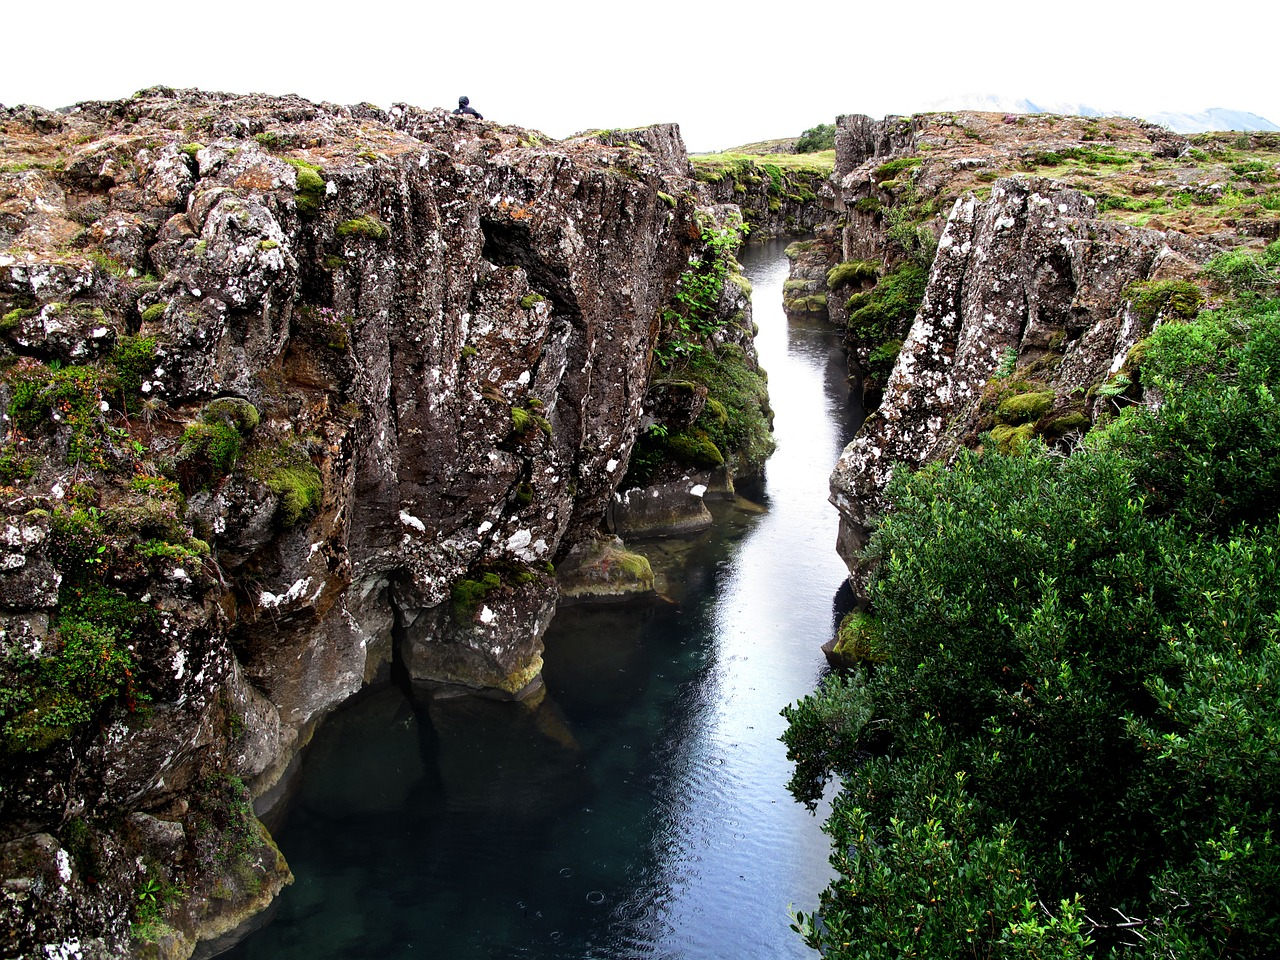 Image of the river in Thingvellir National Park